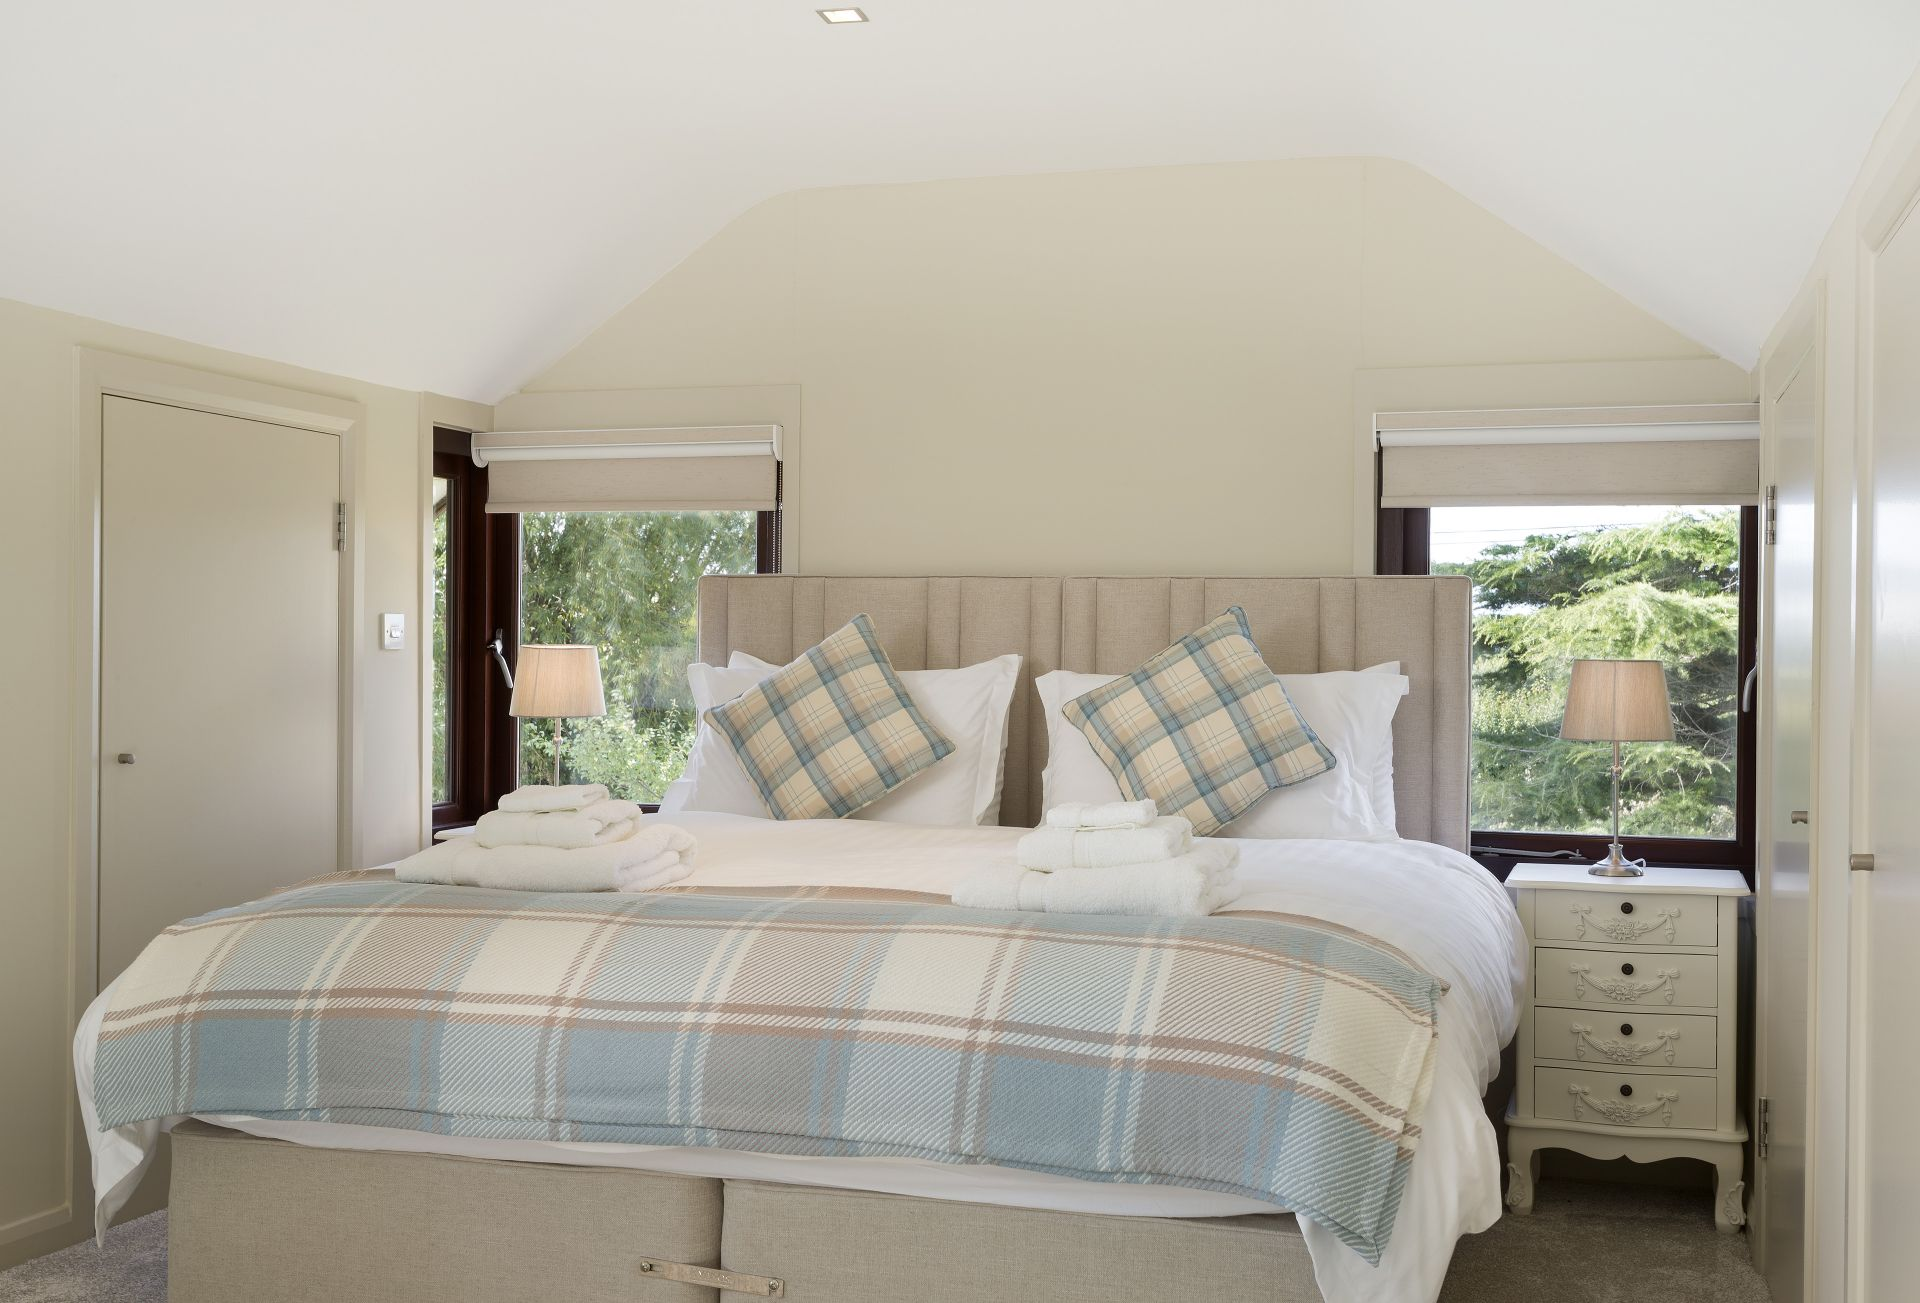 First floor: Super-king zip and link beds which can be converted into two full size single beds